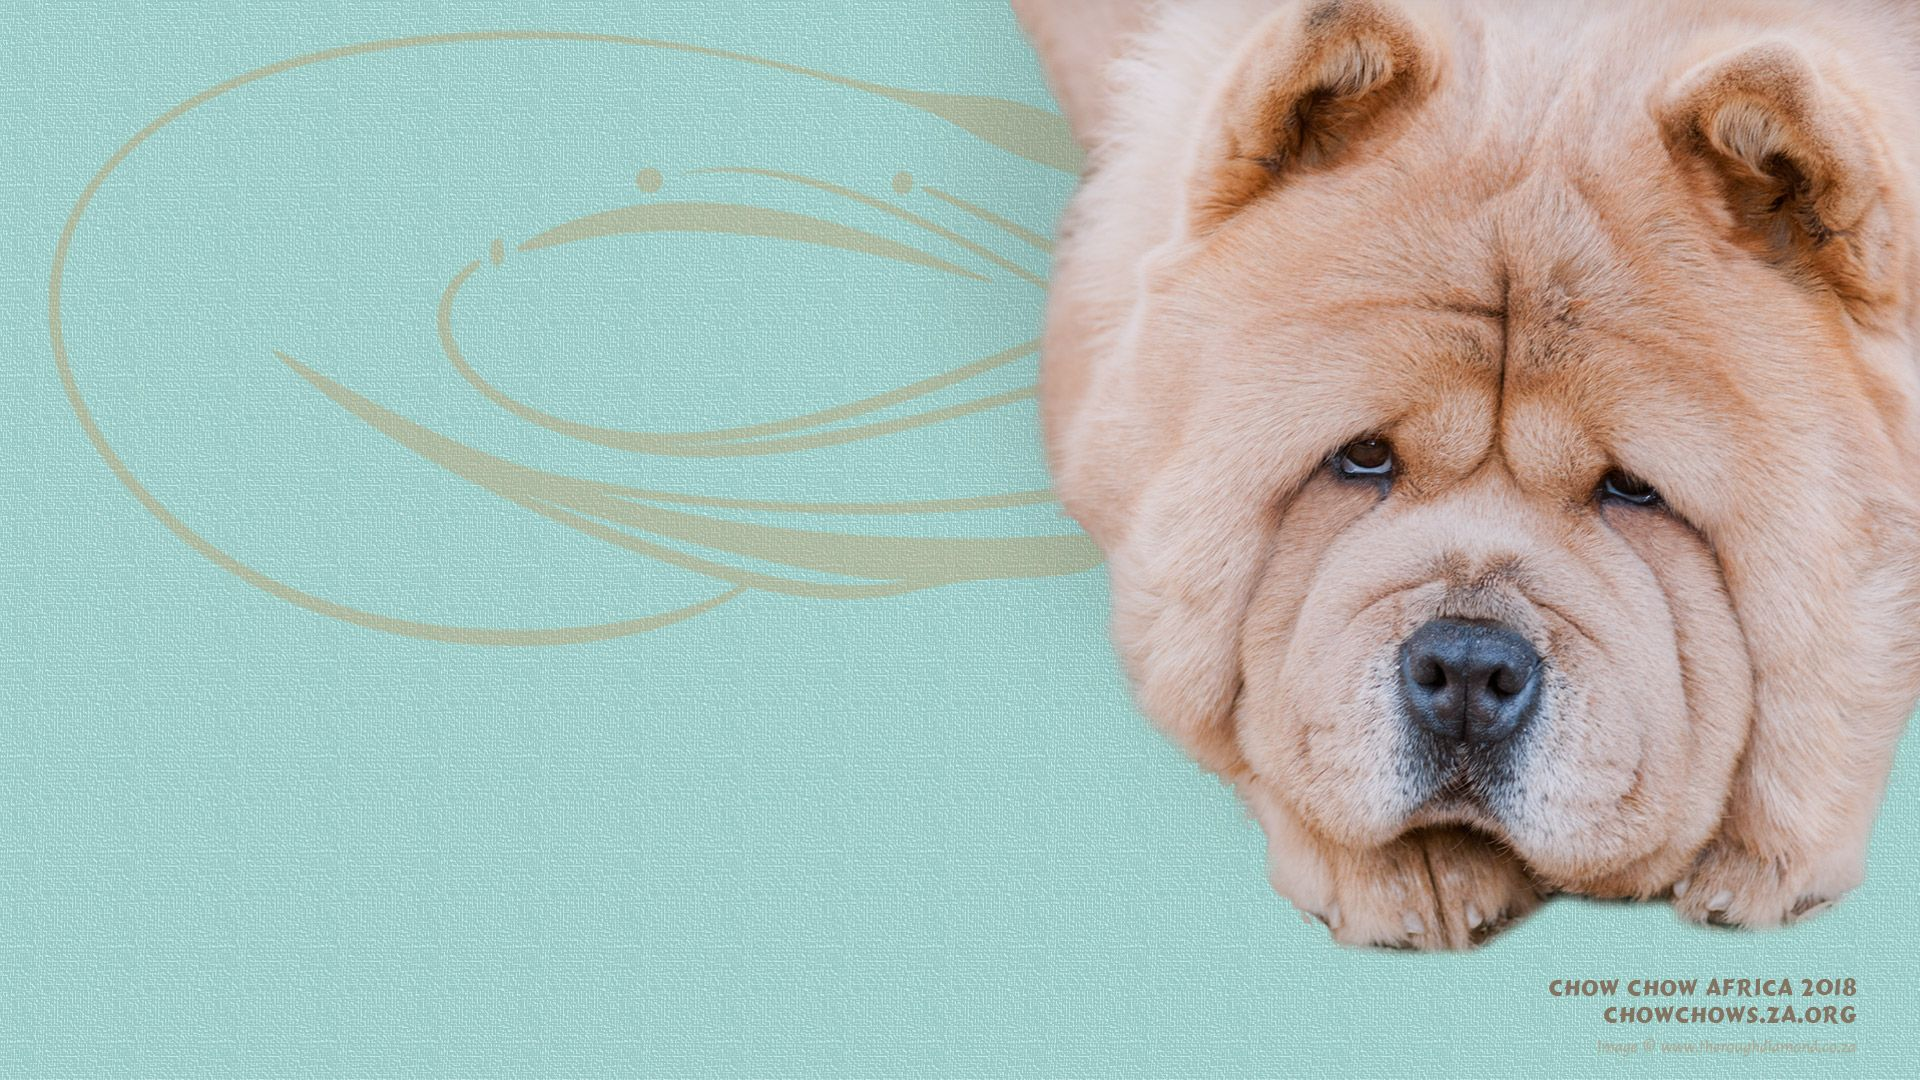 The Smooth Chow Chow